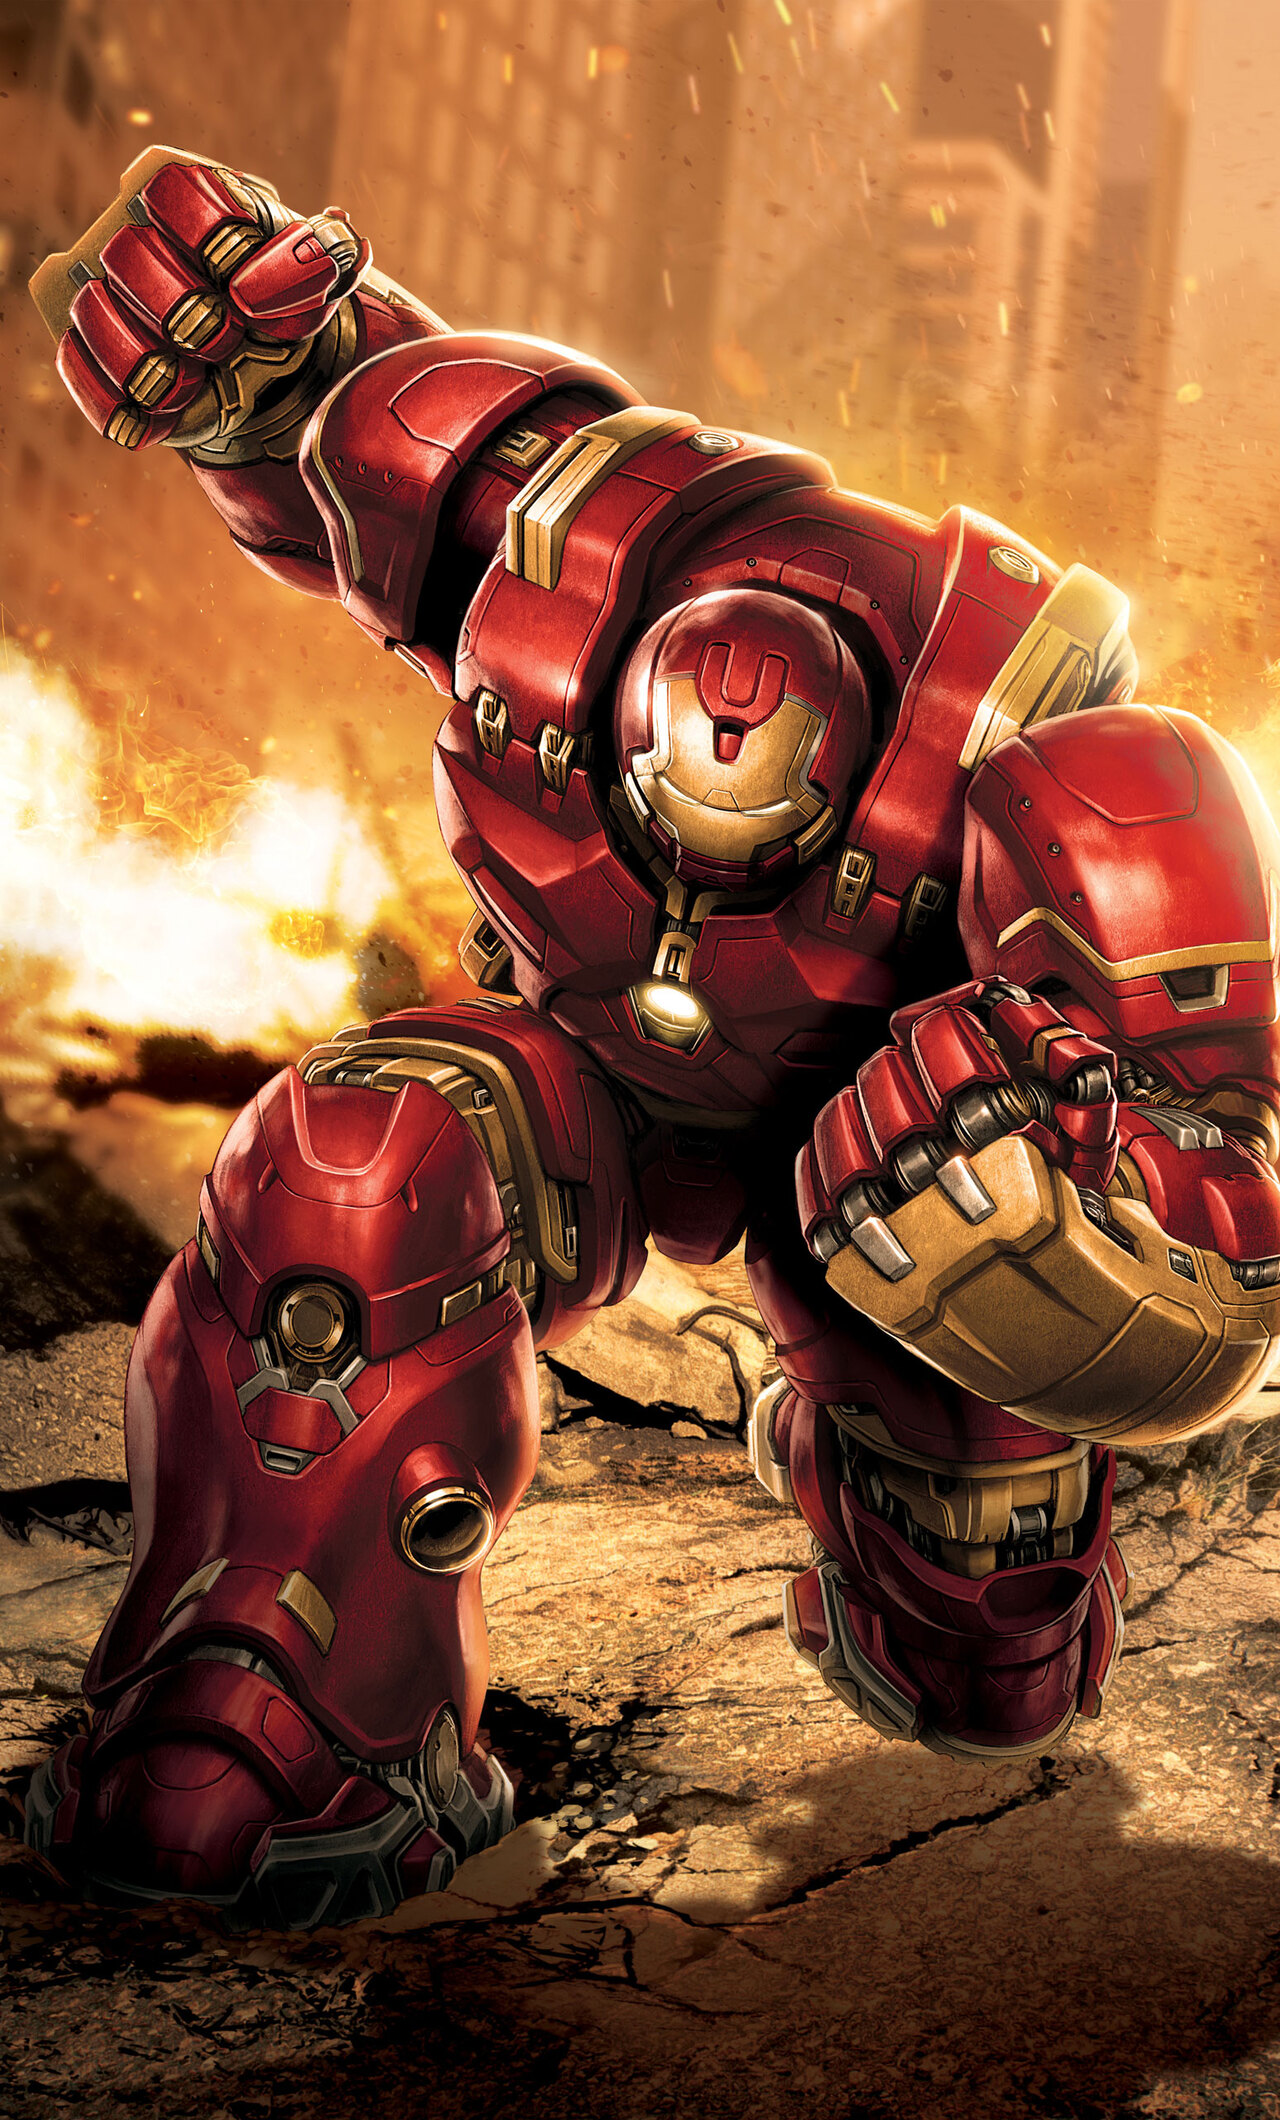 1280x2120 Iron Hulkbuster Artwork Iphone 6 Hd 4k Wallpapers Images